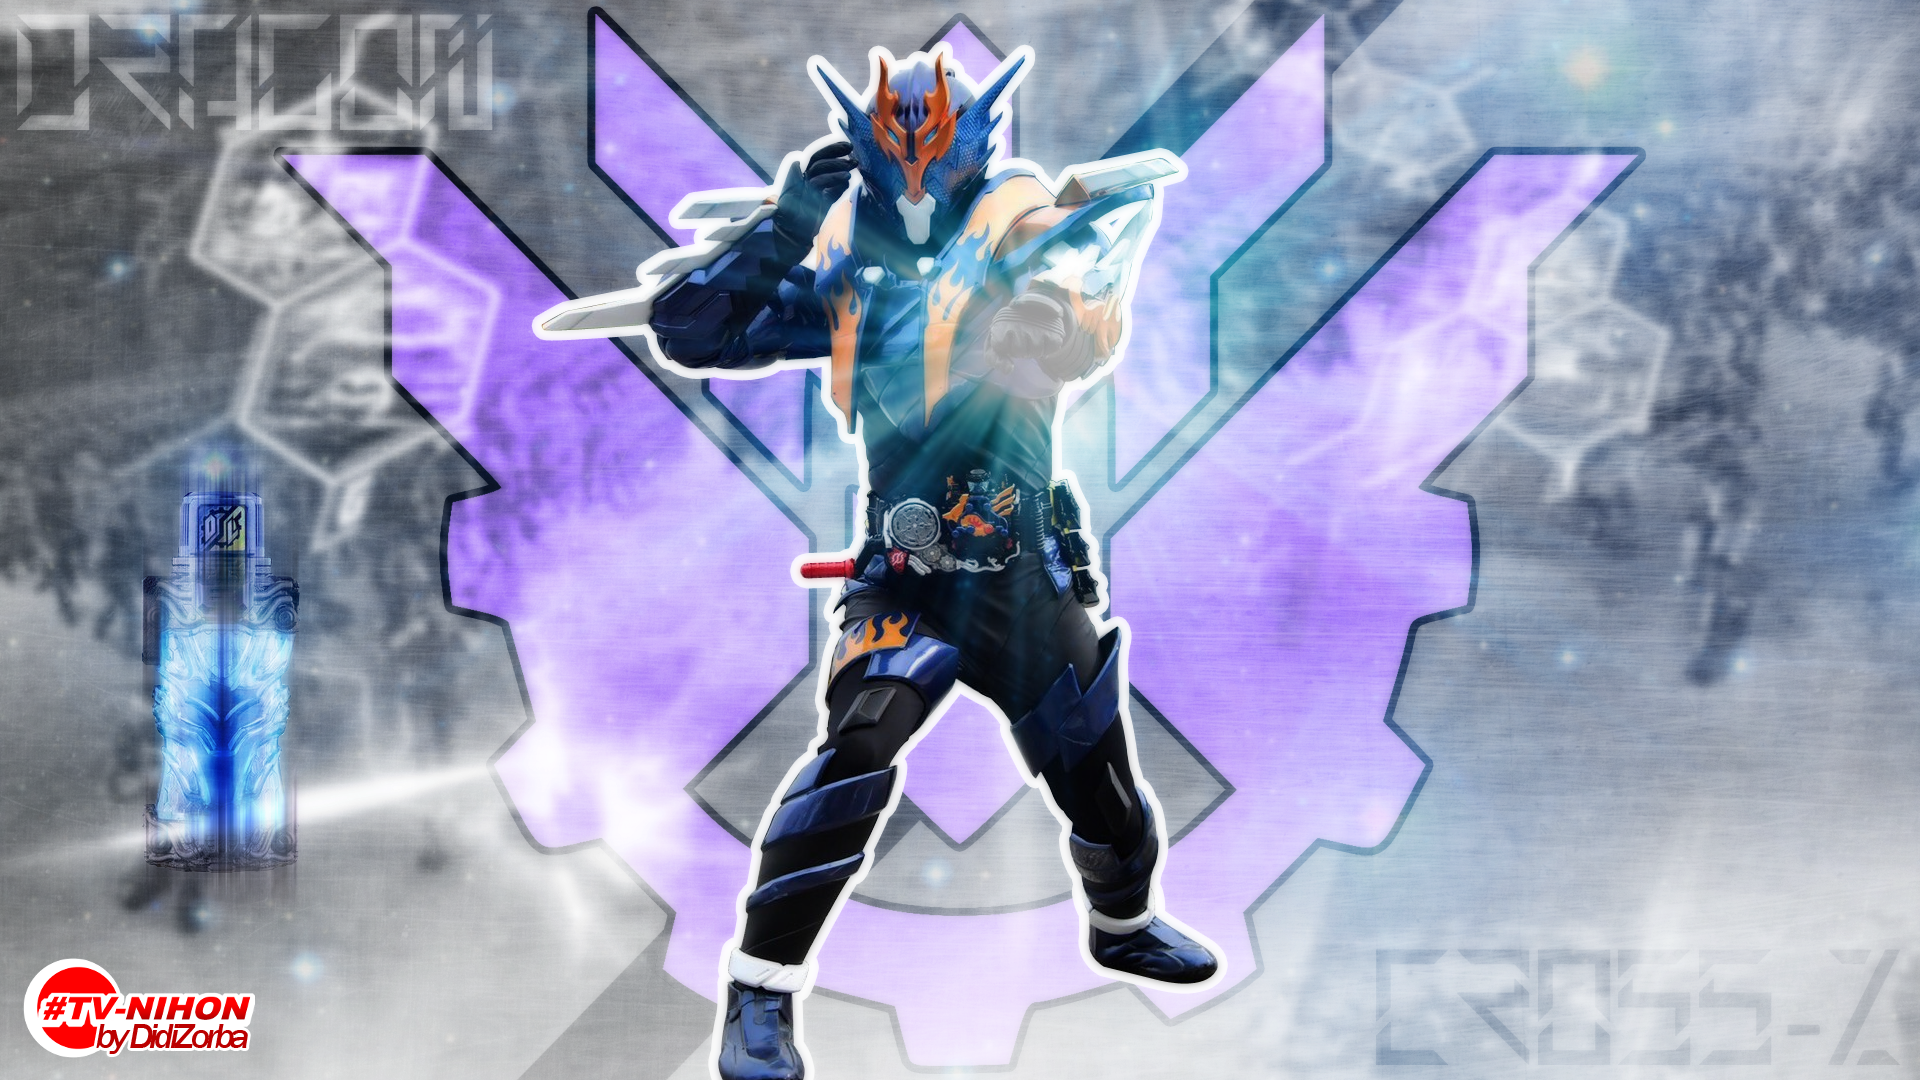 Kamen Rider Build Cross-Z TVNihon Splash by DidiZorbaII on